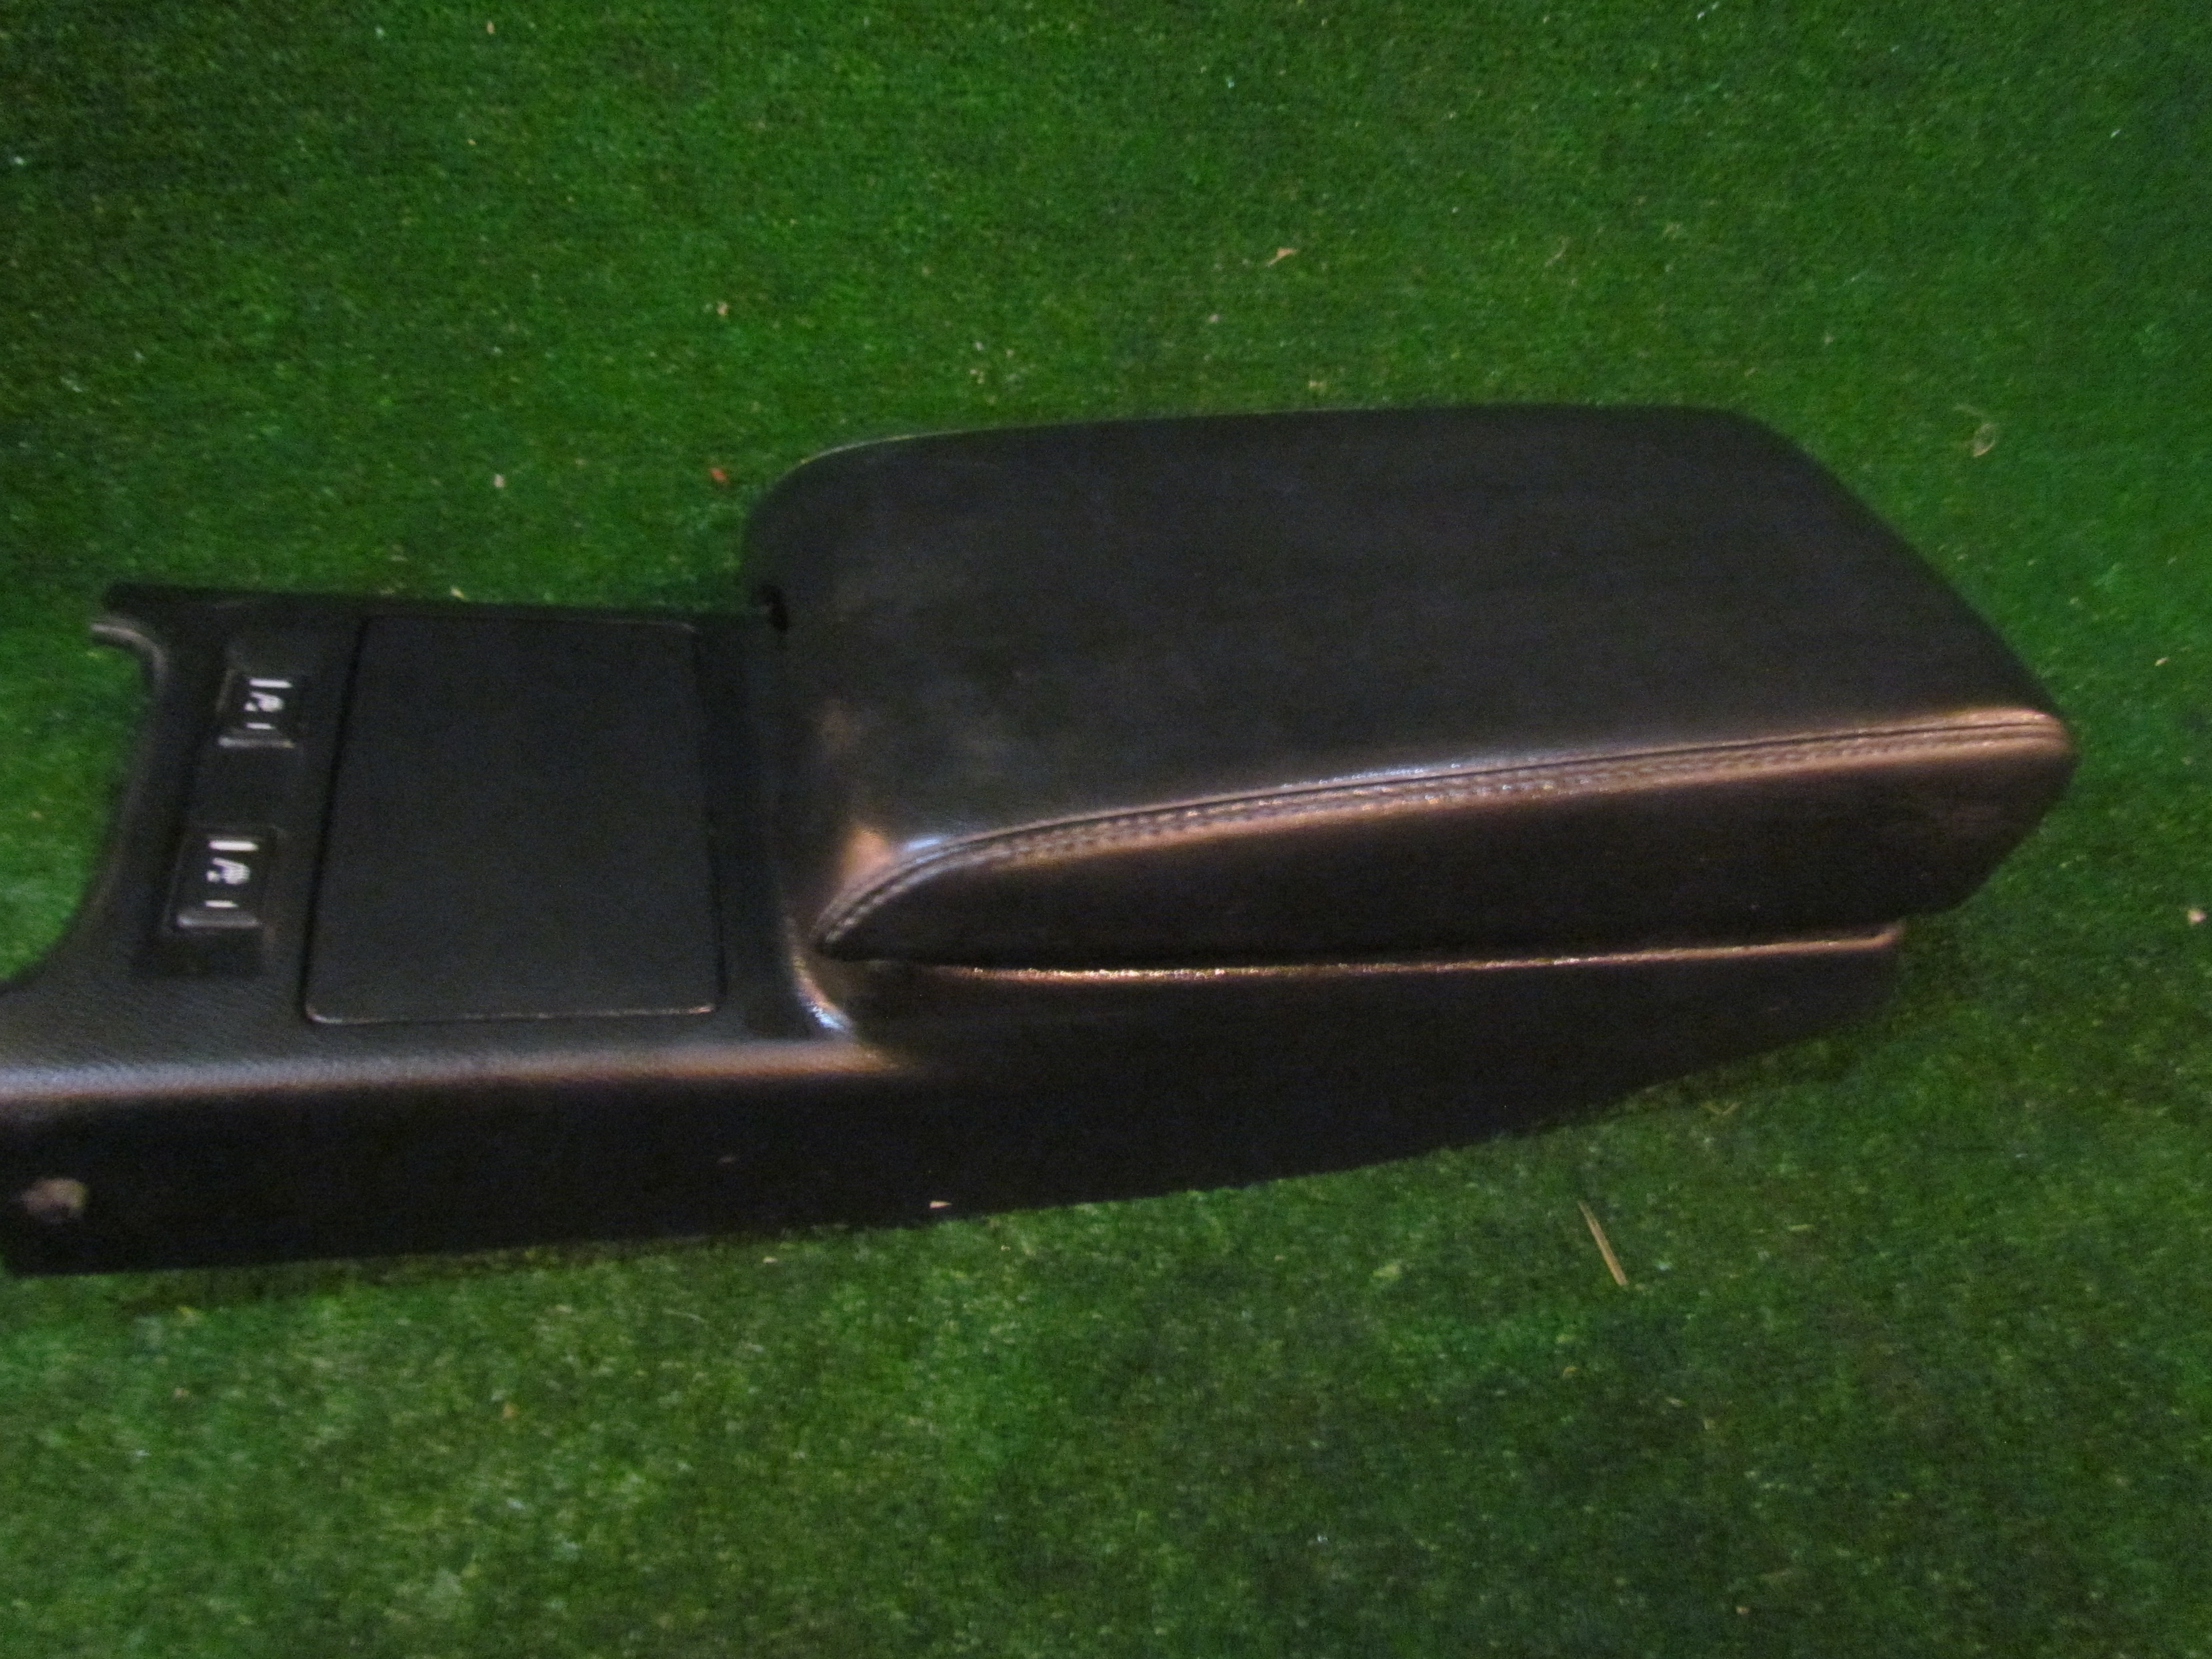 2005 infiniti g35 coupe center console arm rest 96950 ac700 ebay image is loading 2005 infiniti g35 coupe center console arm rest vanachro Choice Image